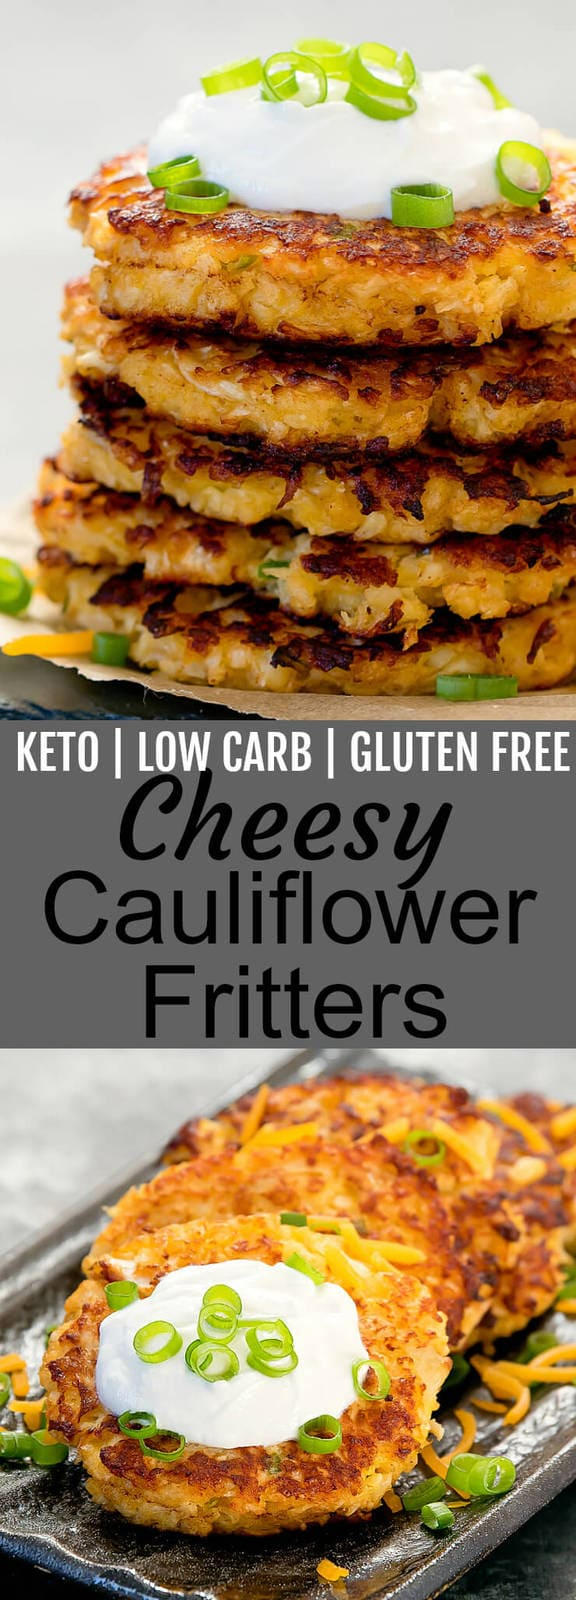 Cheesy Cauliflower Fritters. Crispy fritters that are keto, low carb, wheat flour free and gluten free.